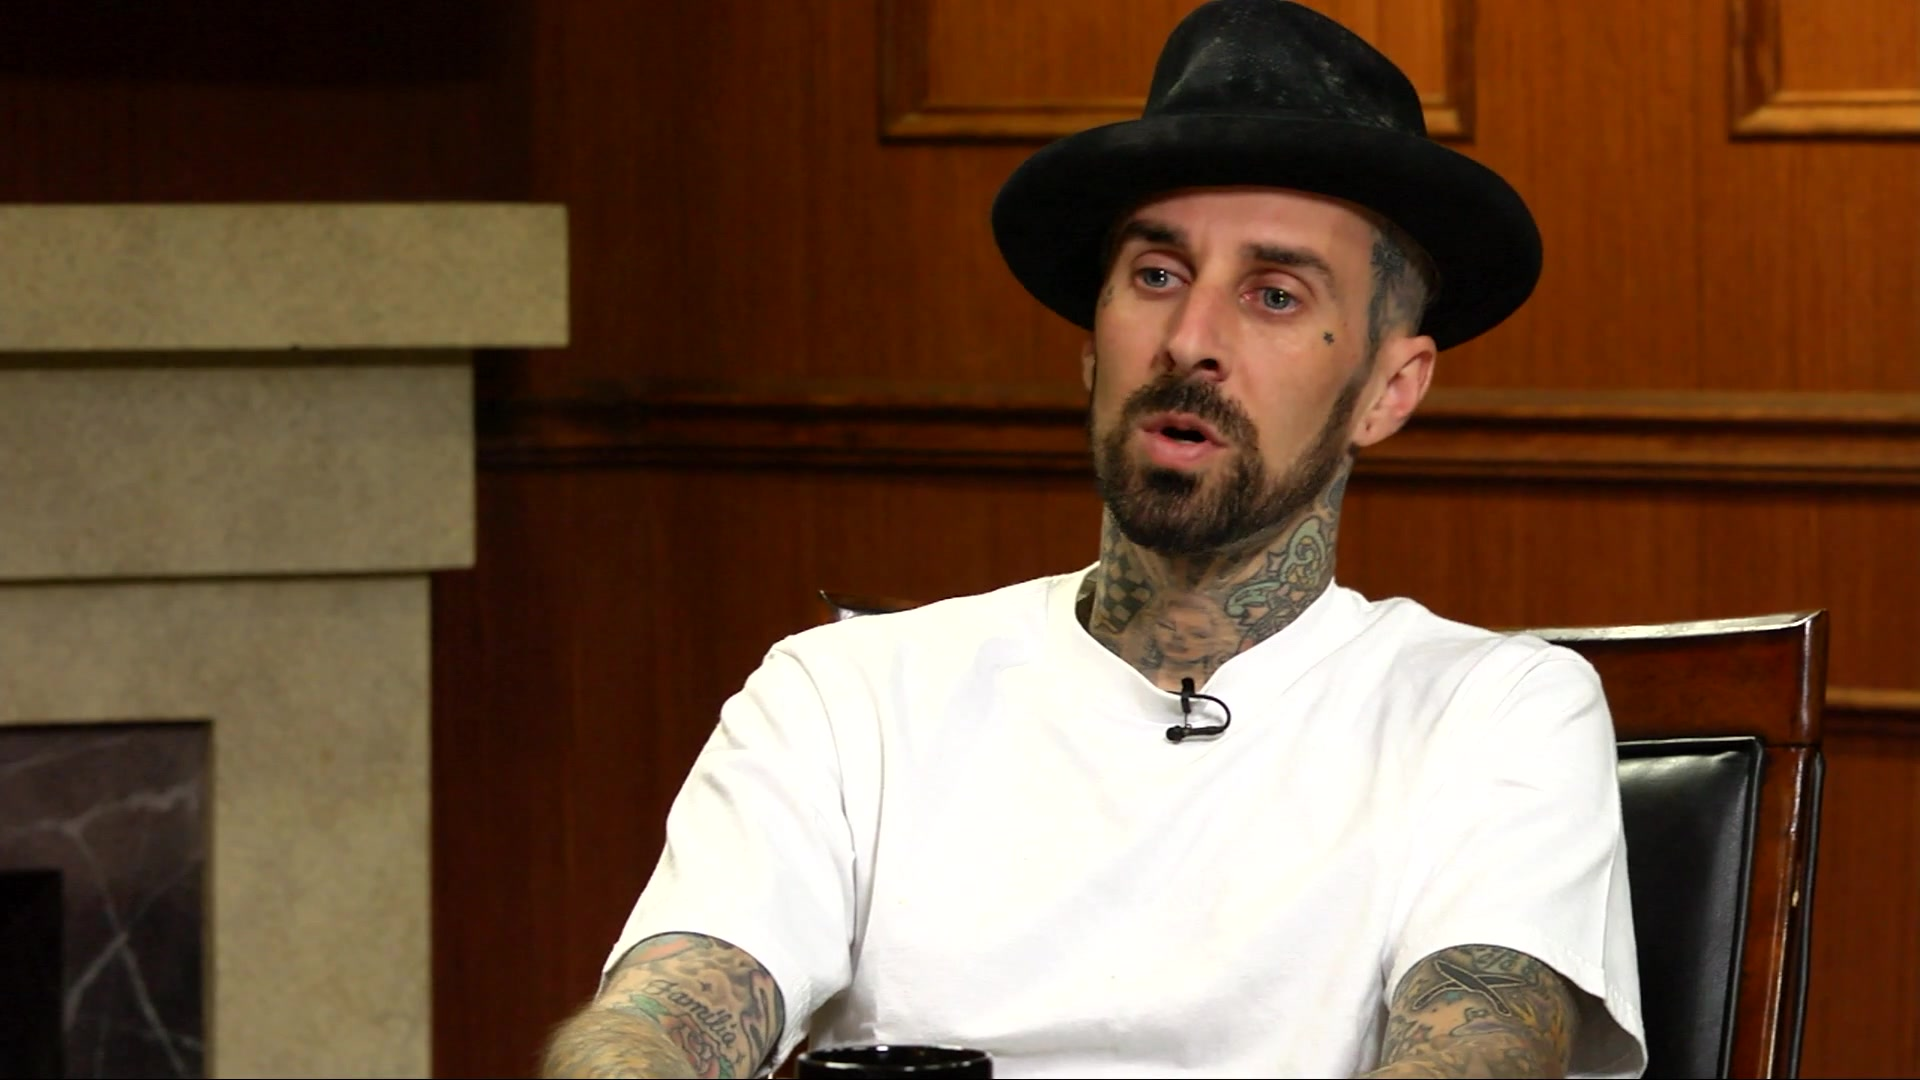 Travis Barker On Tom DeLonge and The Future Of Blink-182